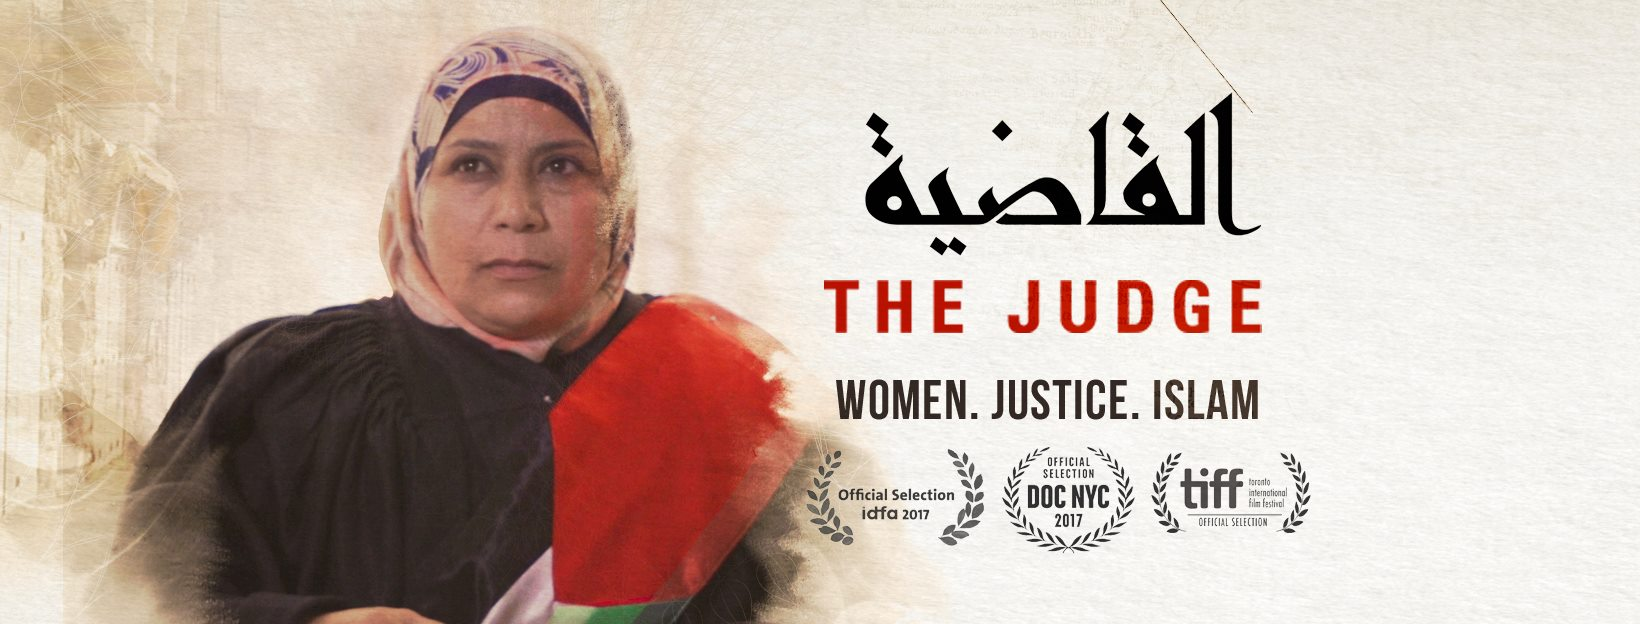 the-judge-film.jpg